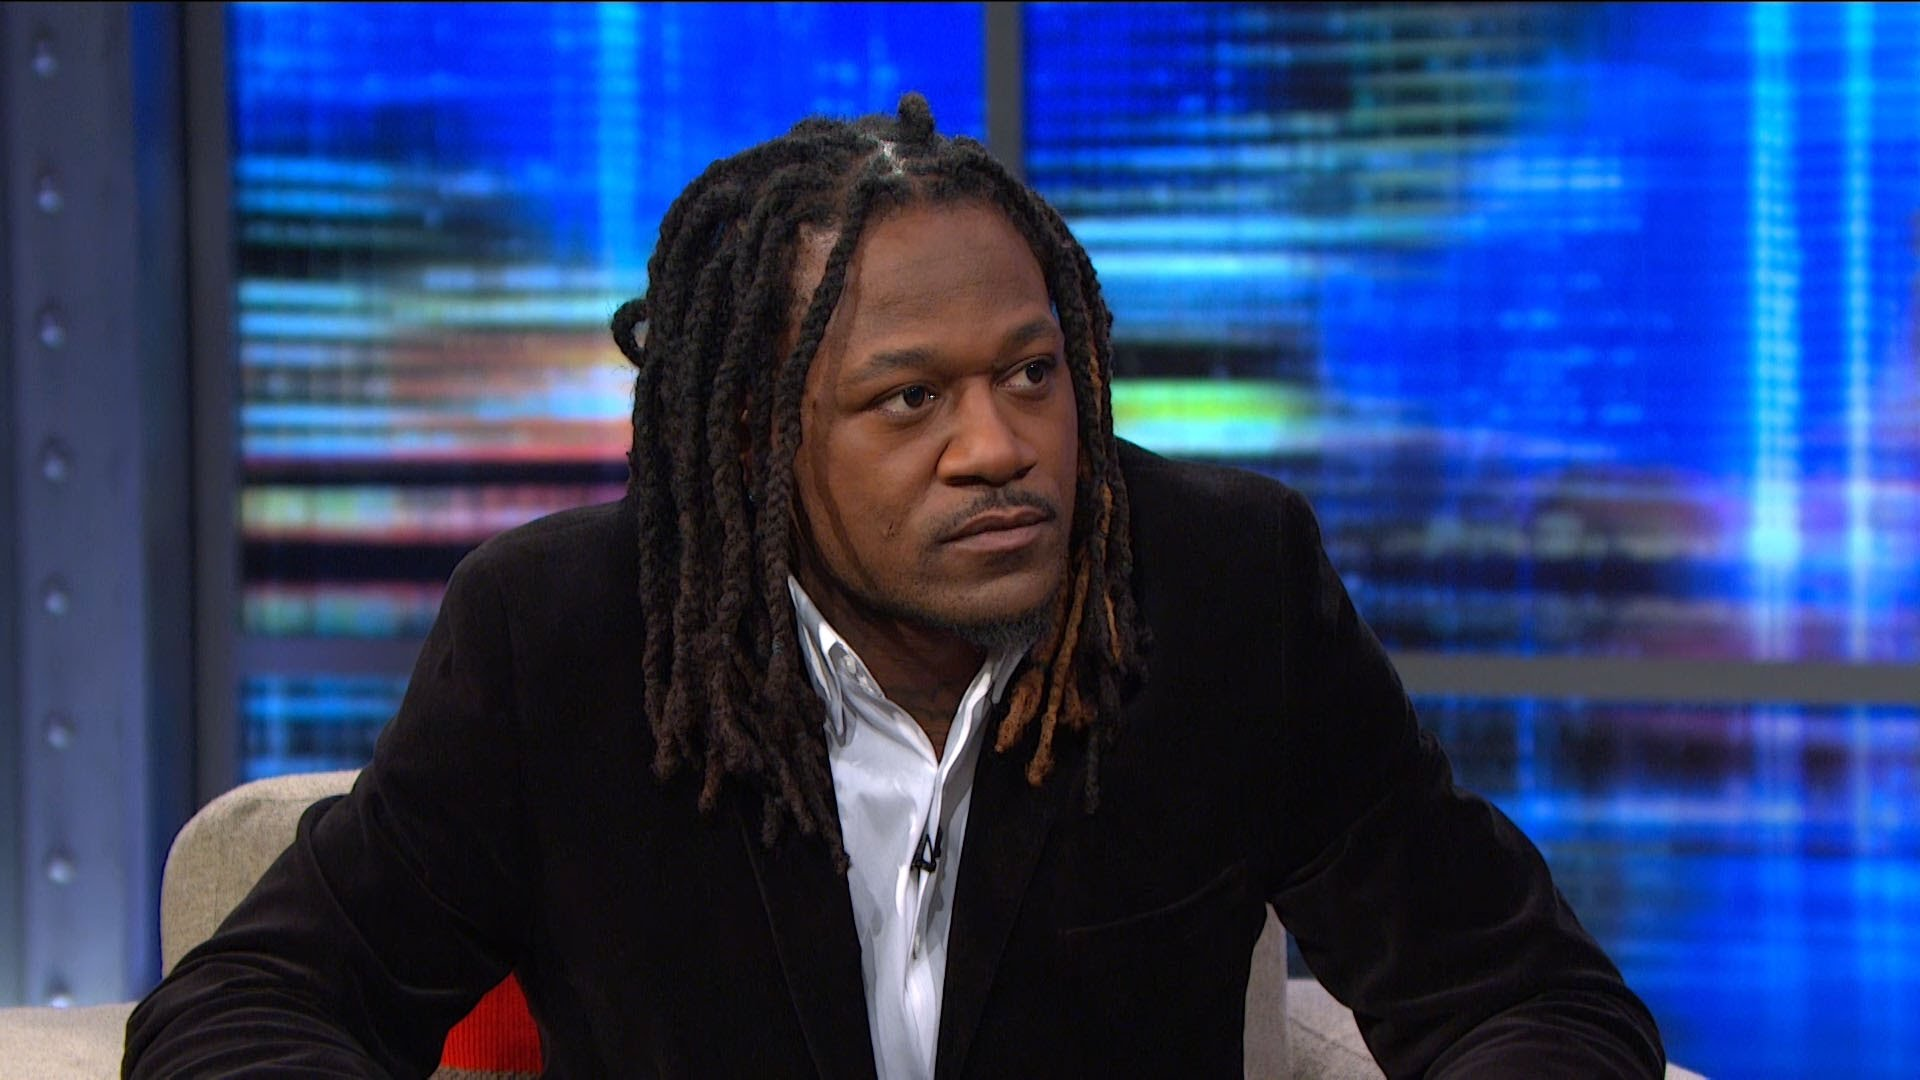 Adam 'Pacman' Jones on Antonio Brown's injury